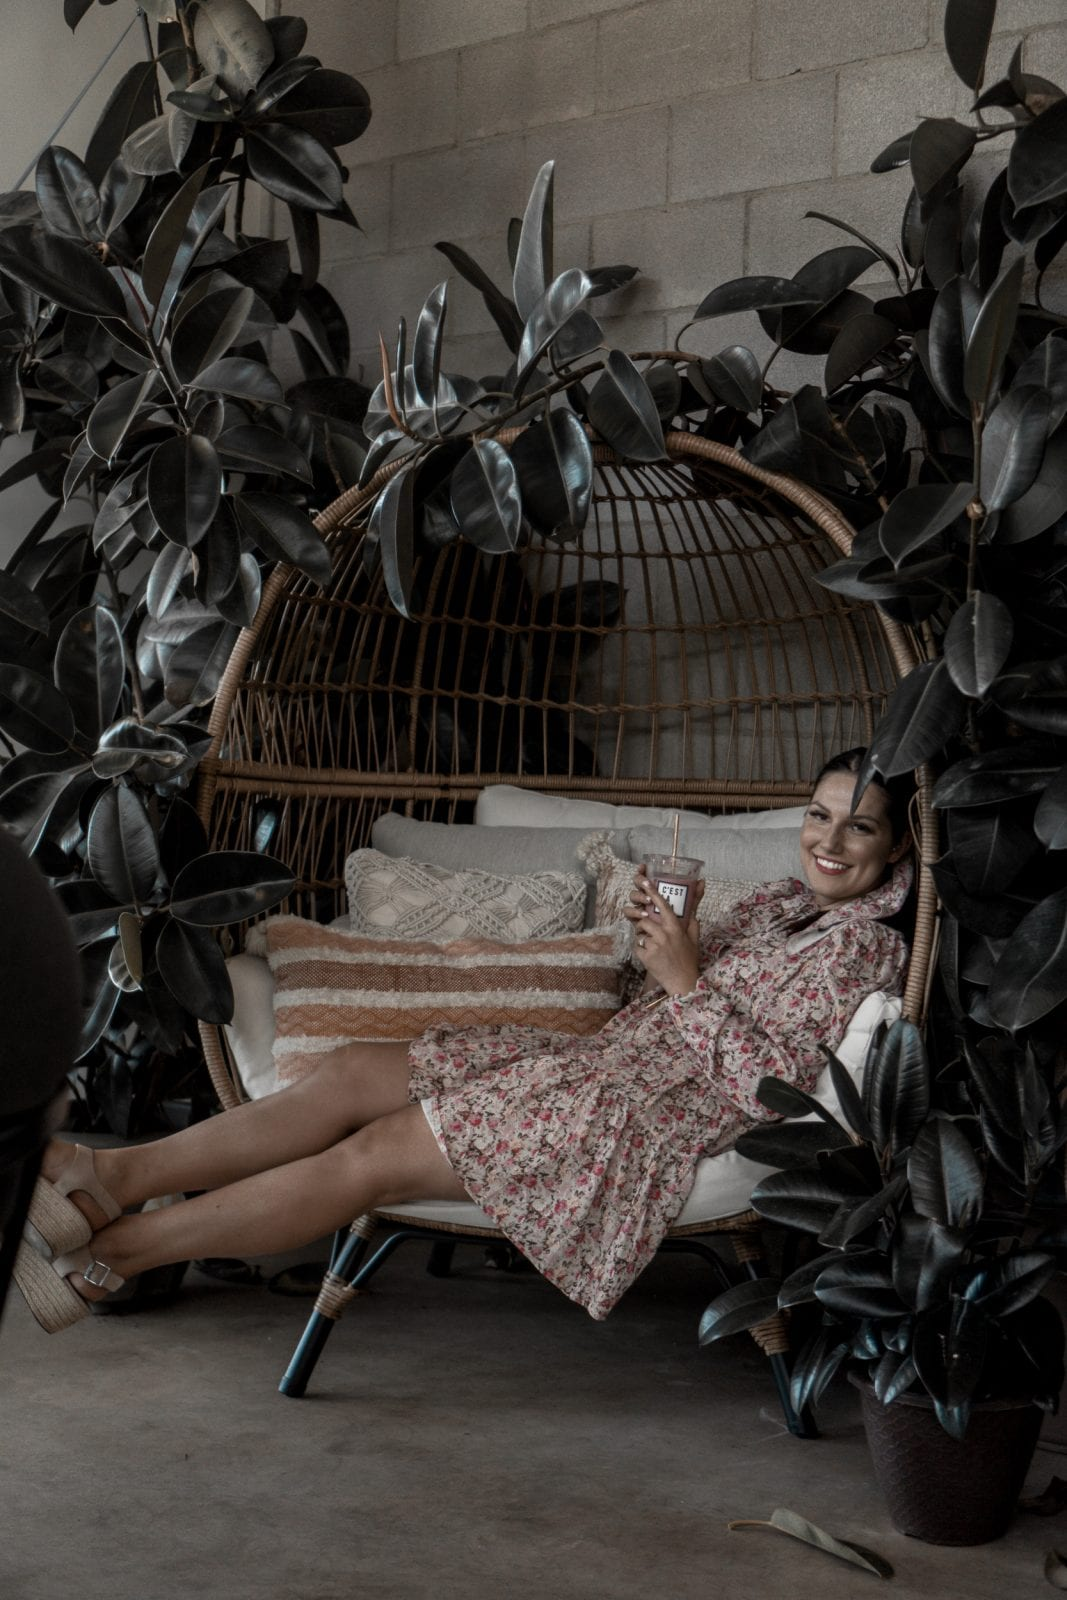 In this photo, I am sitting sideways at Teaspressa in a fun wicker chair surrounded by plants.